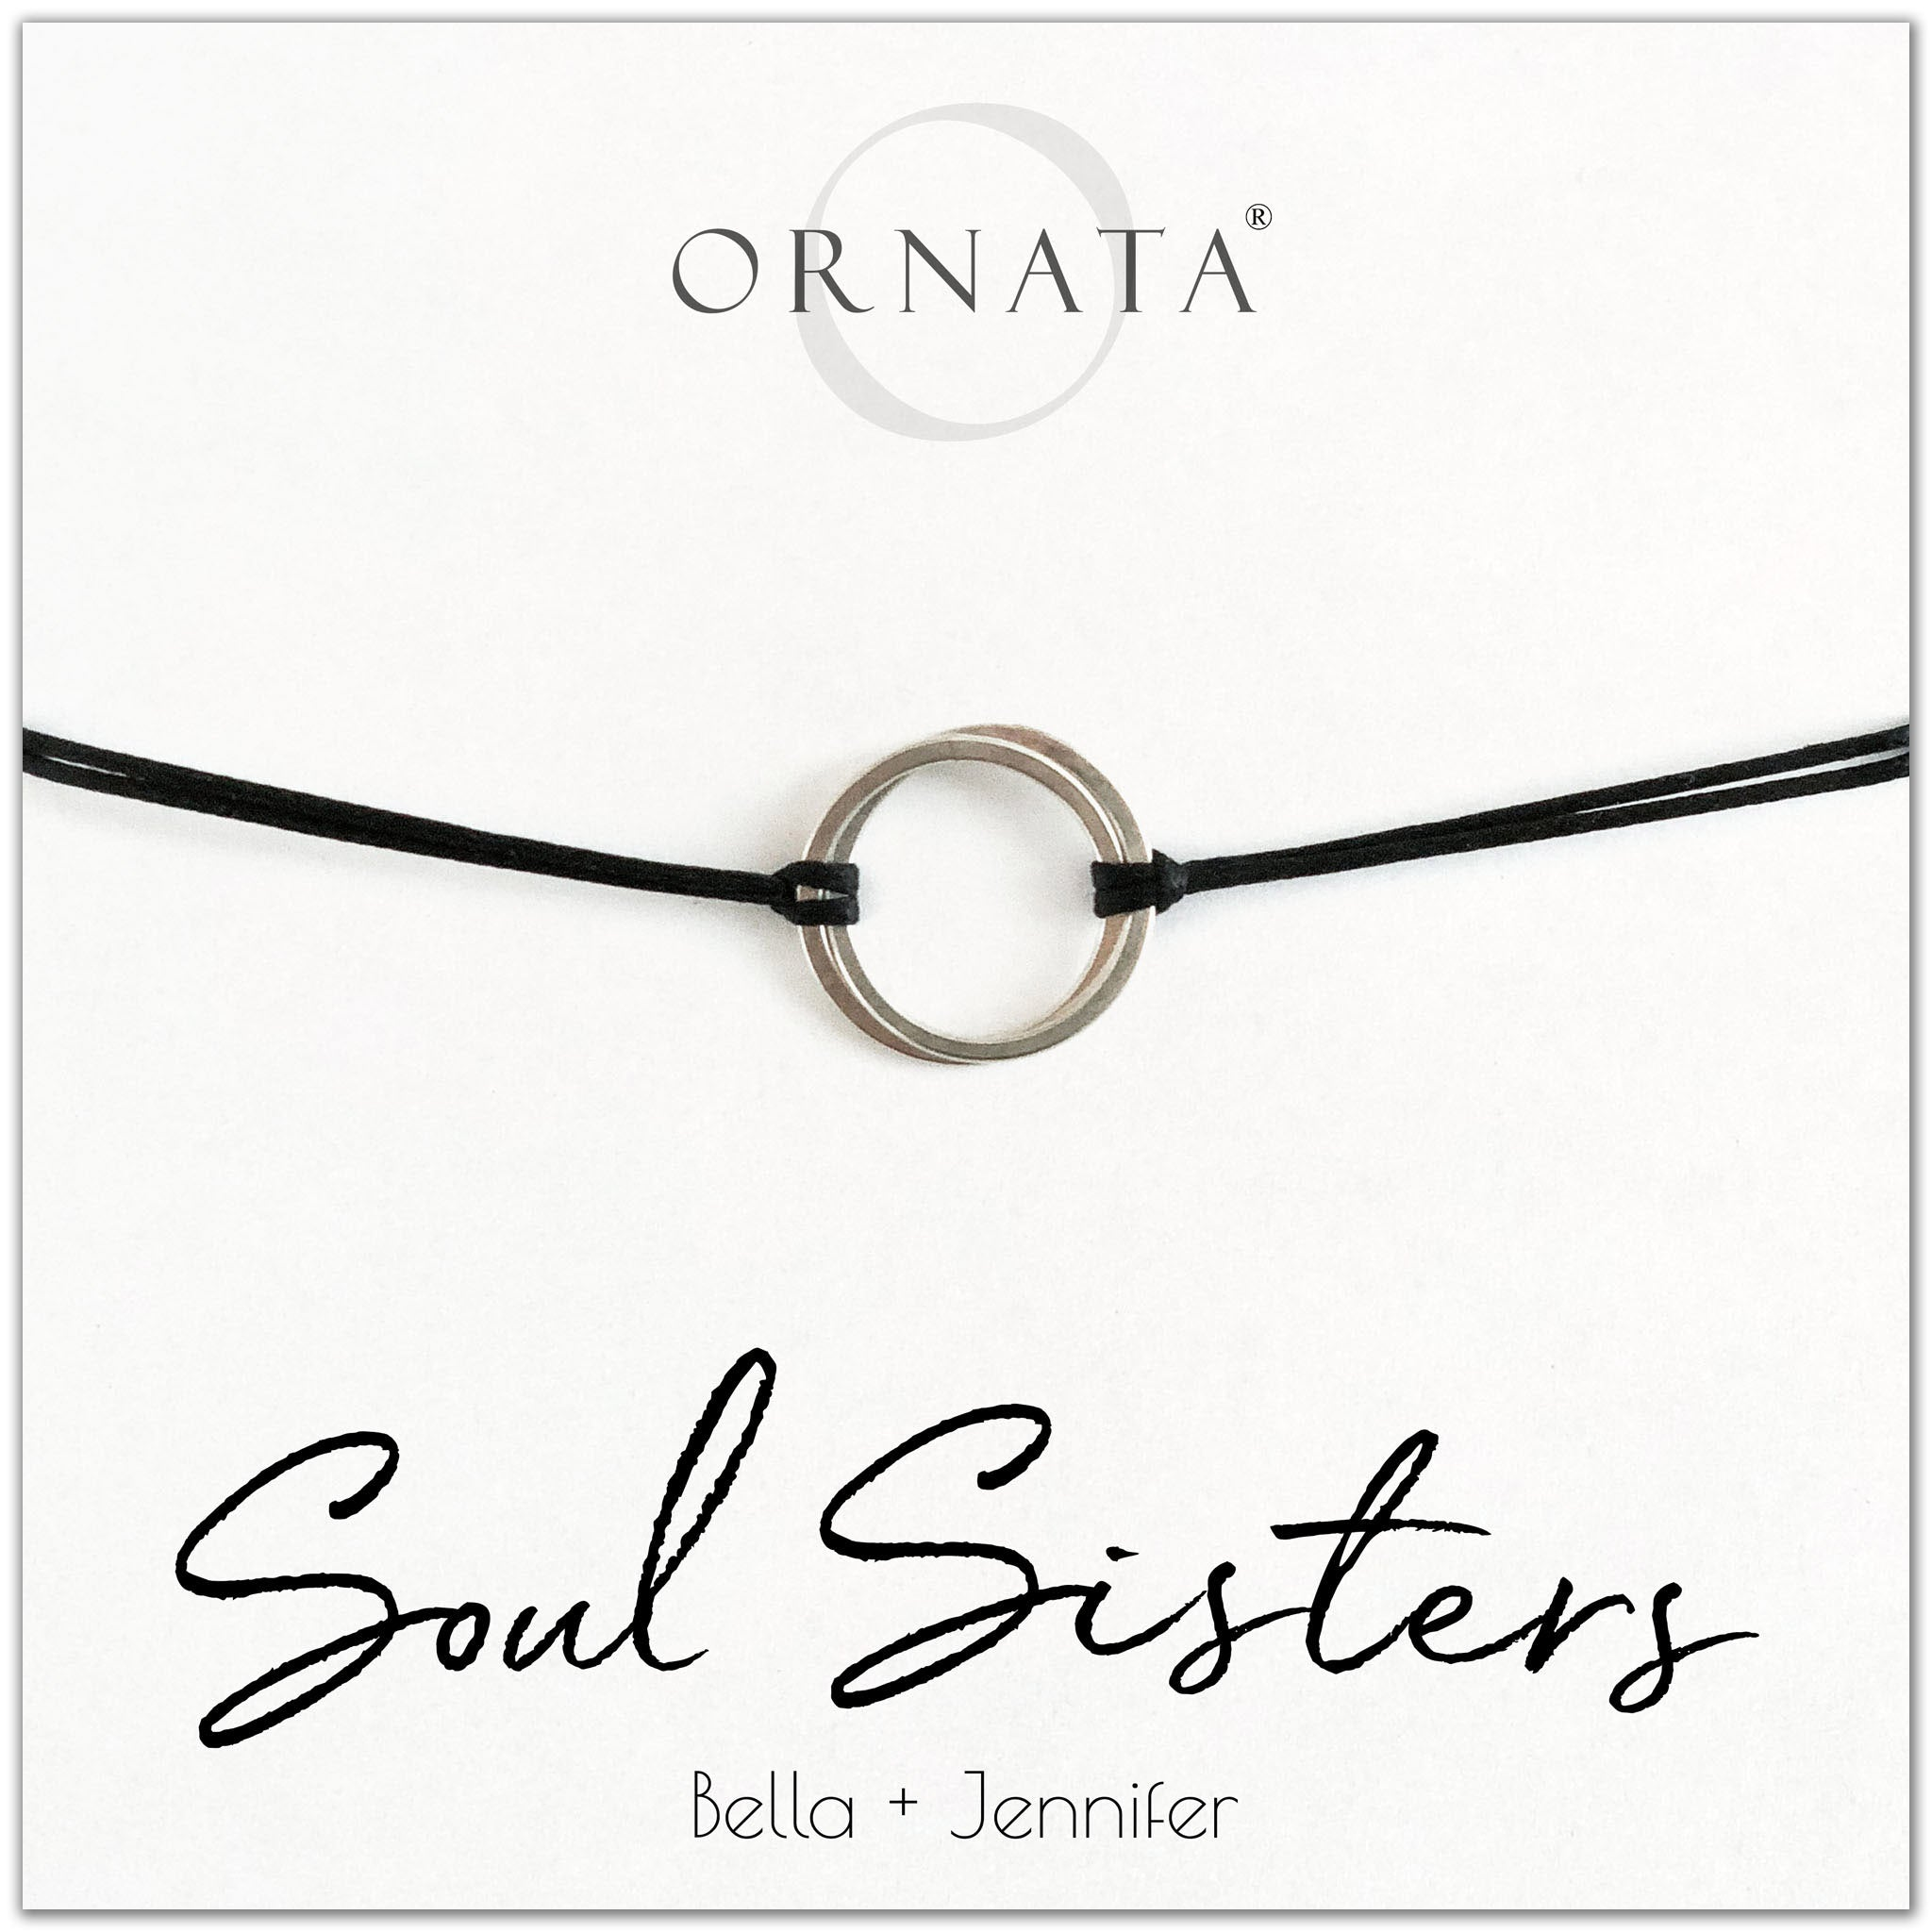 Soul sisters or best friends personalized sterling silver corded bolo bracelet. Our custom cord bracelets make good gifts for best friends or sisters or soul mates. Friendship bracelet with two sterling silver interlocking rings on black cord.